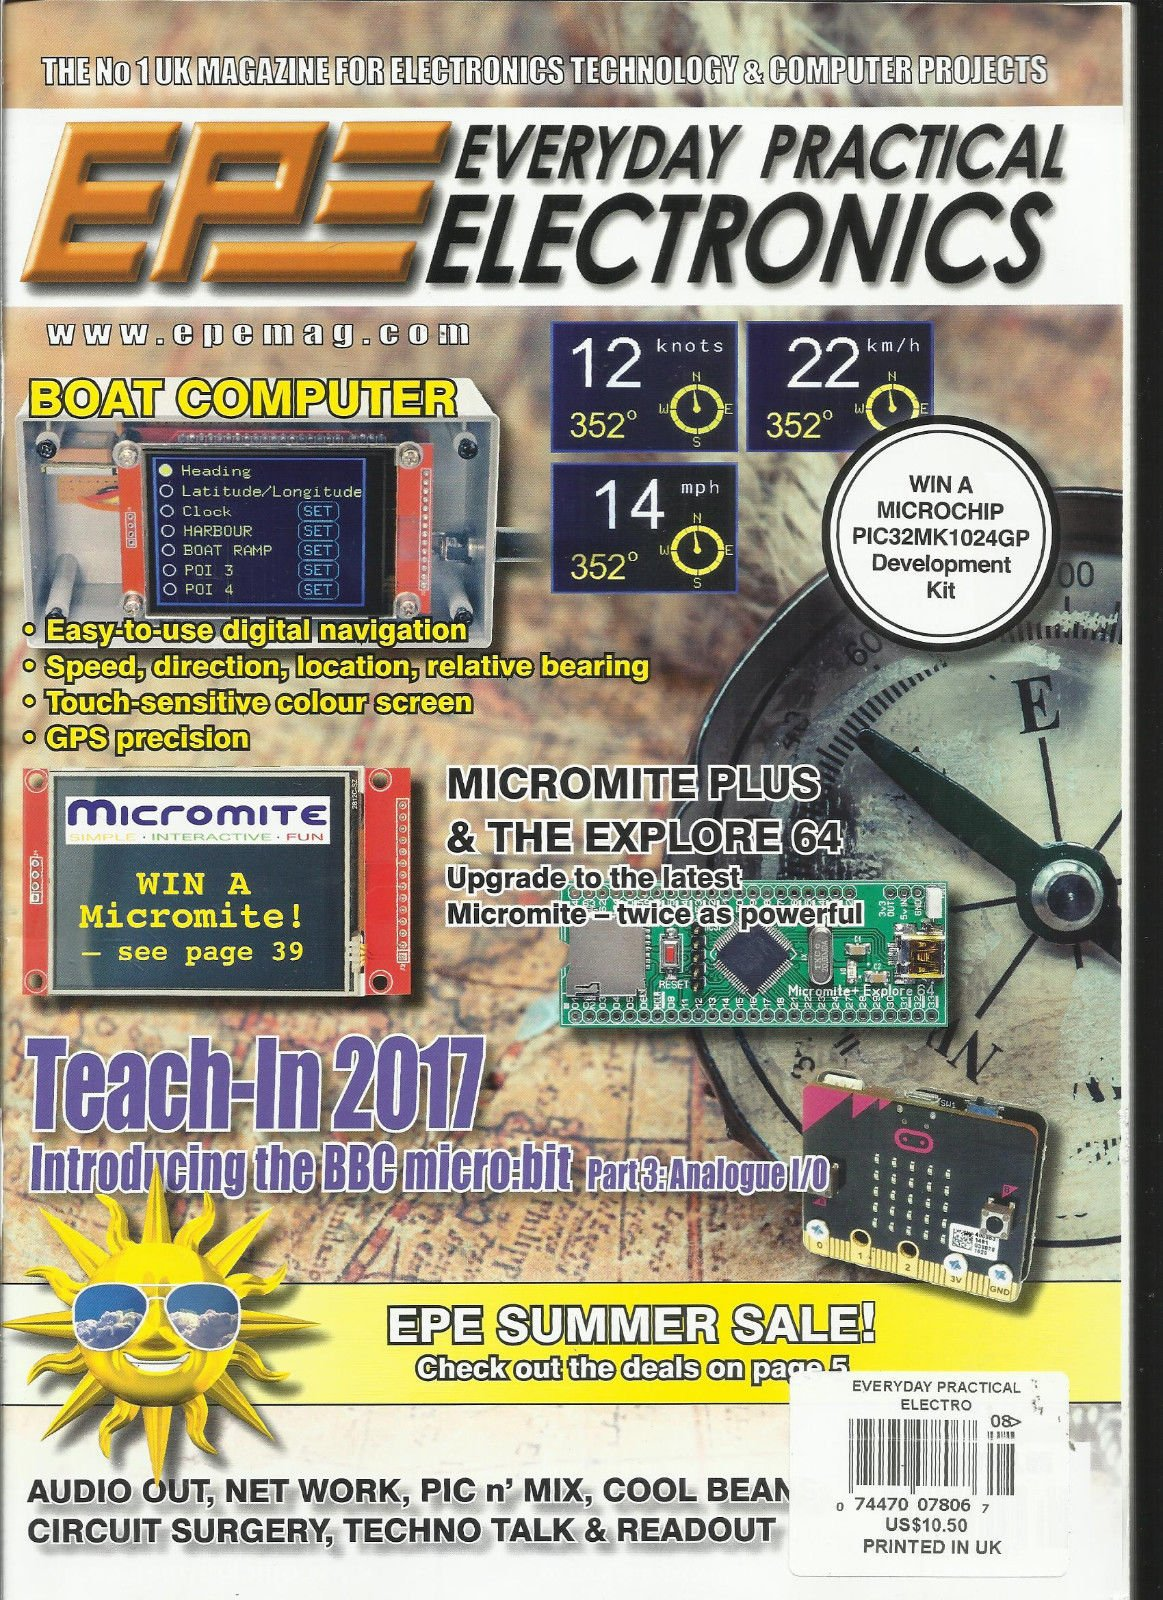 EPE EVERYDAY PRACTICAL ELECTRONICS, AUGUST, 2017 VOL. 46 NO.8 PRINTED IN UK by Generic